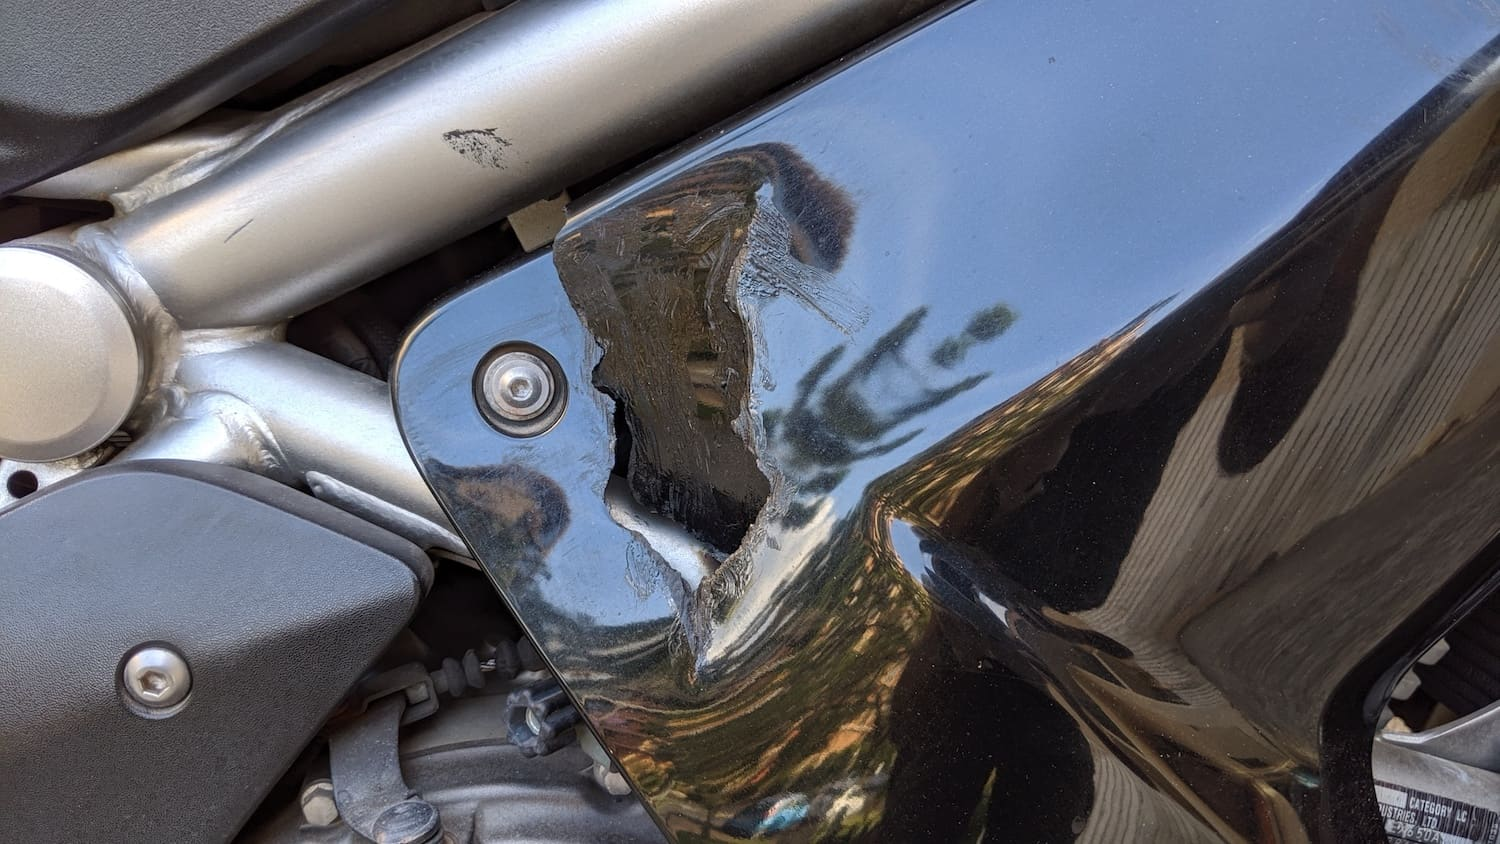 hole in motorcycle fairing that needs to be repaired.